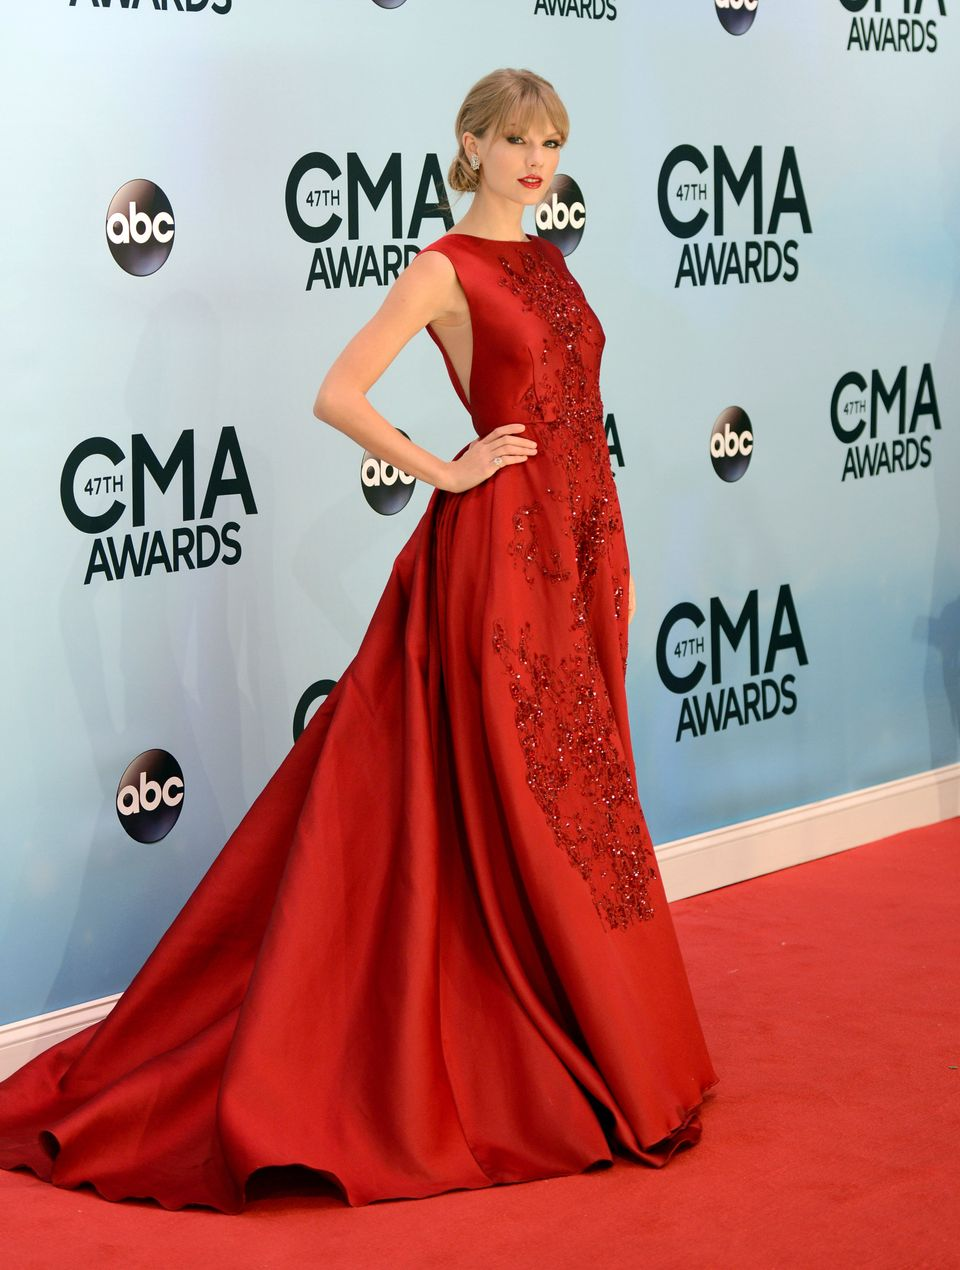 Taylor Swift arrives at the 47th annual CMA Awards at Bridgestone Arena on Wednesday, Nov. 6, 2013, in Nashville, Tenn. (Phot